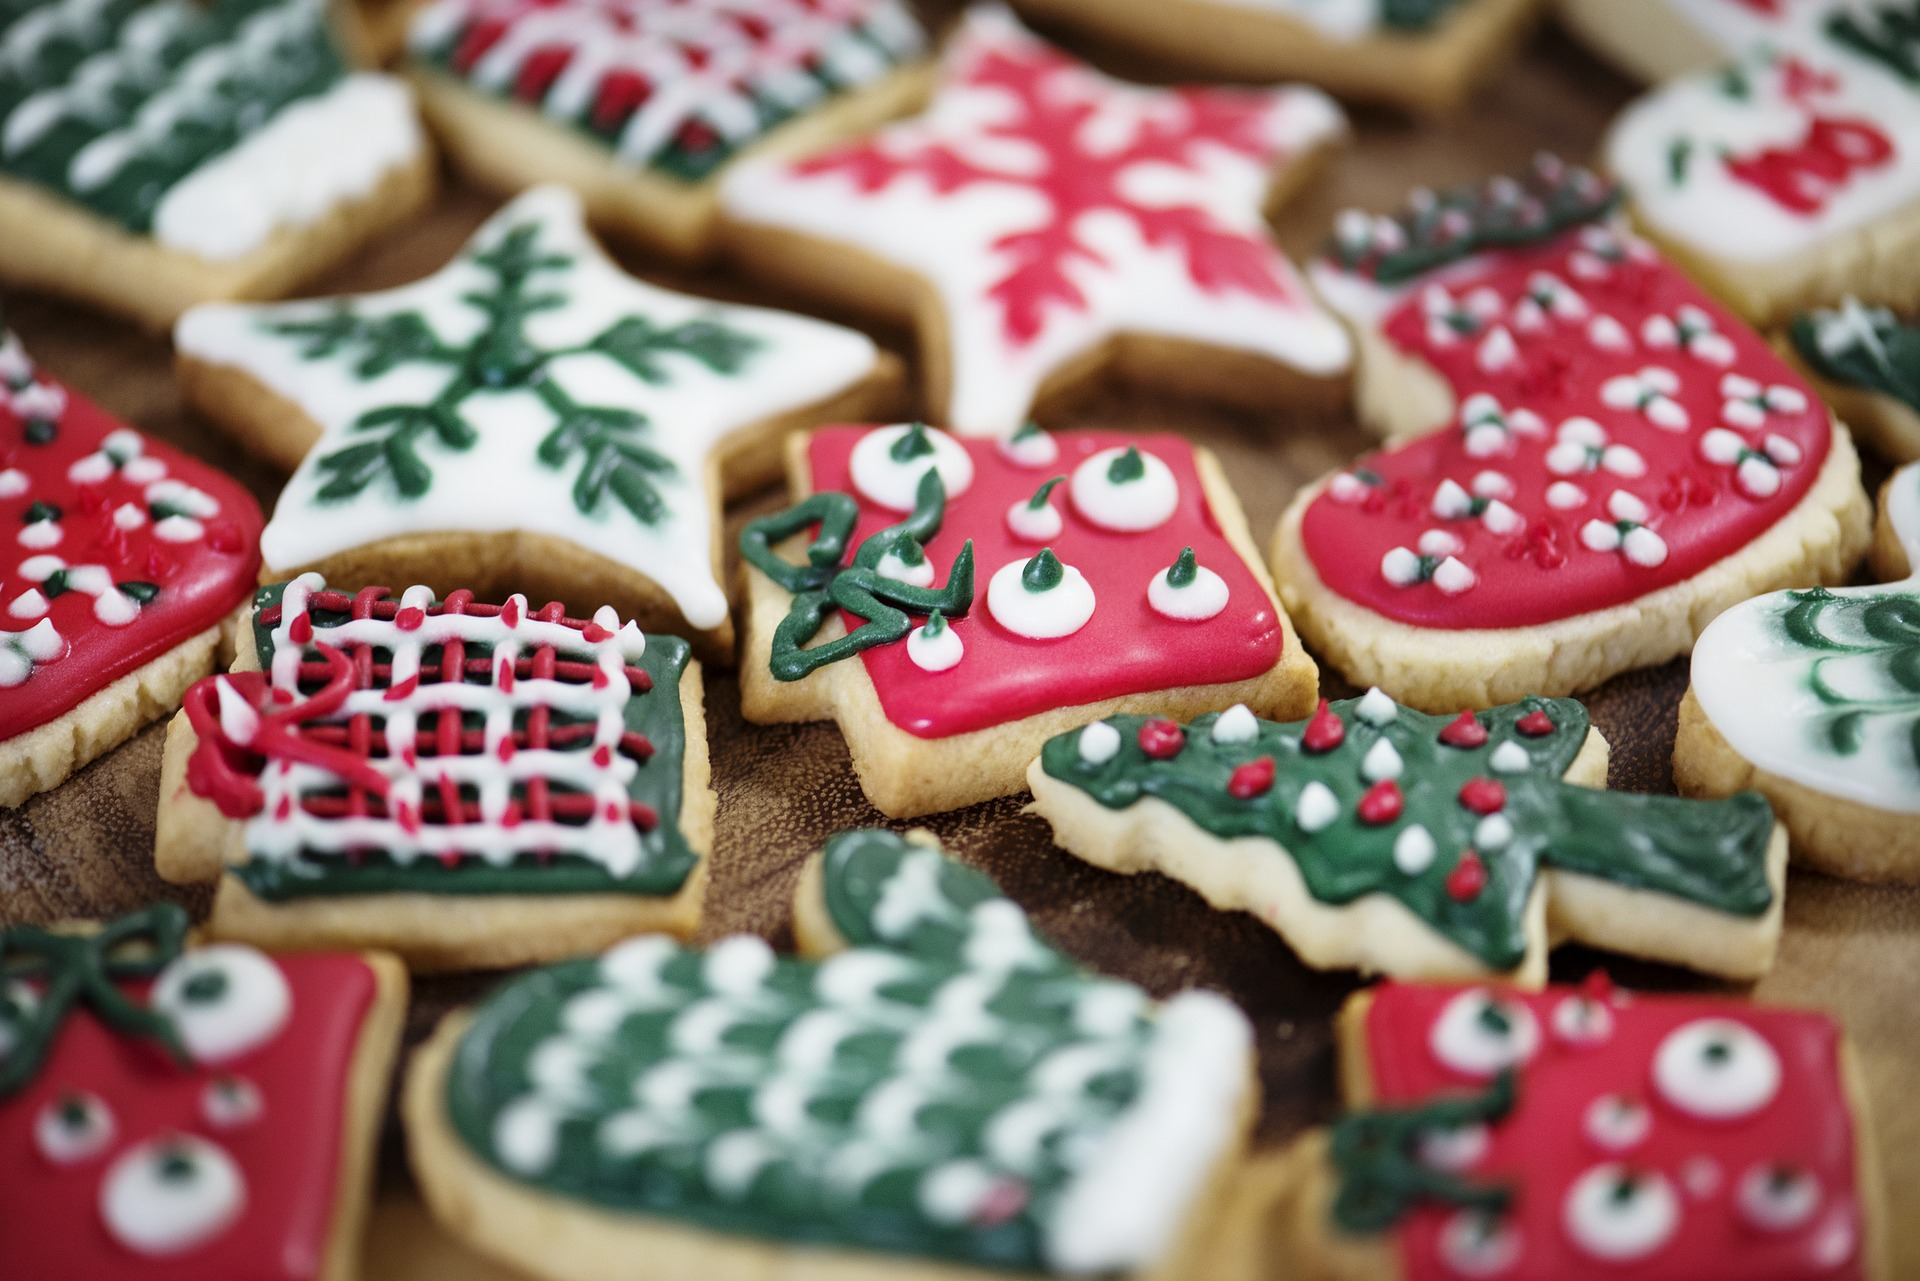 christmas-cookies-decoration-reston-farm-market-va.jpg